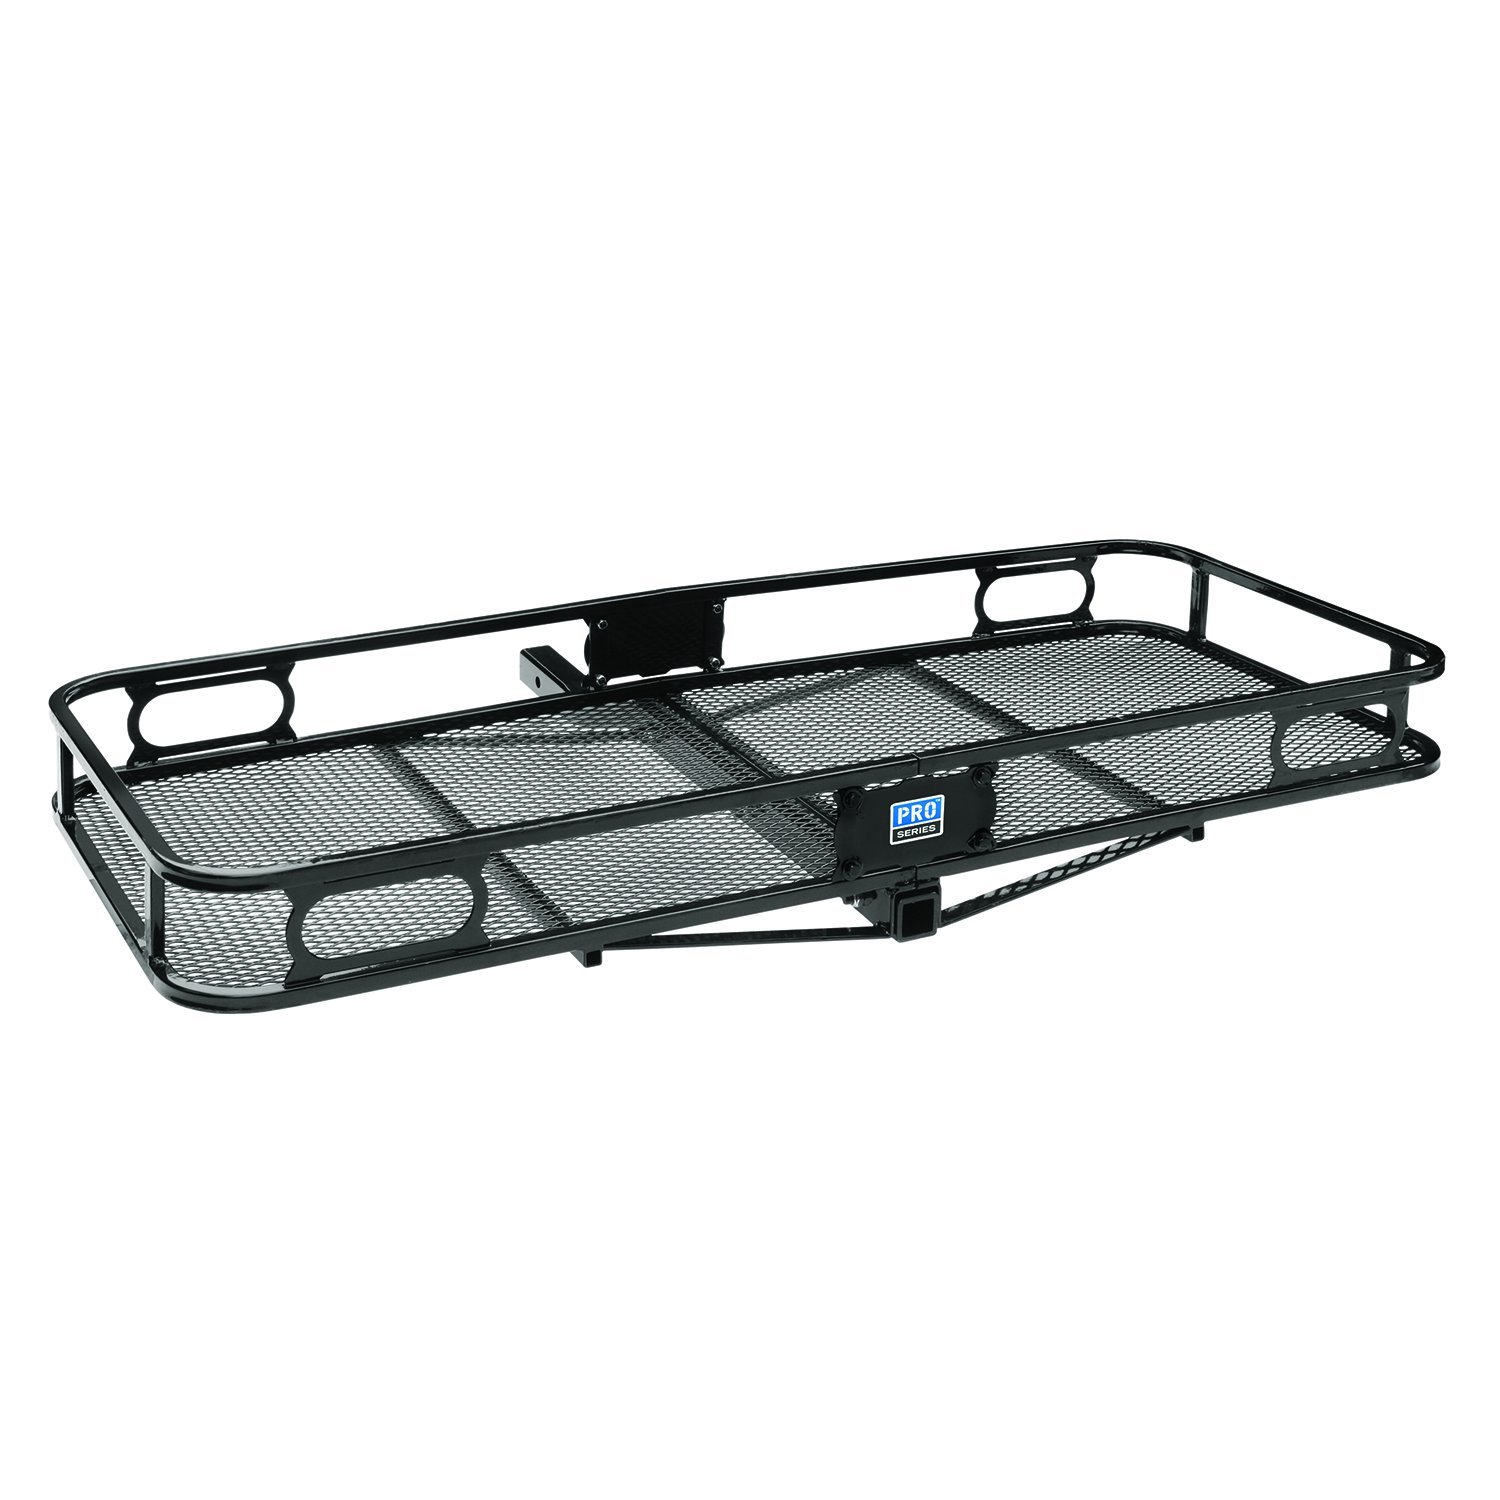 "Amazon.com: Pro Series Black Reese 63153 Cargo Carrier Metal 24""X60"":  Automotive"